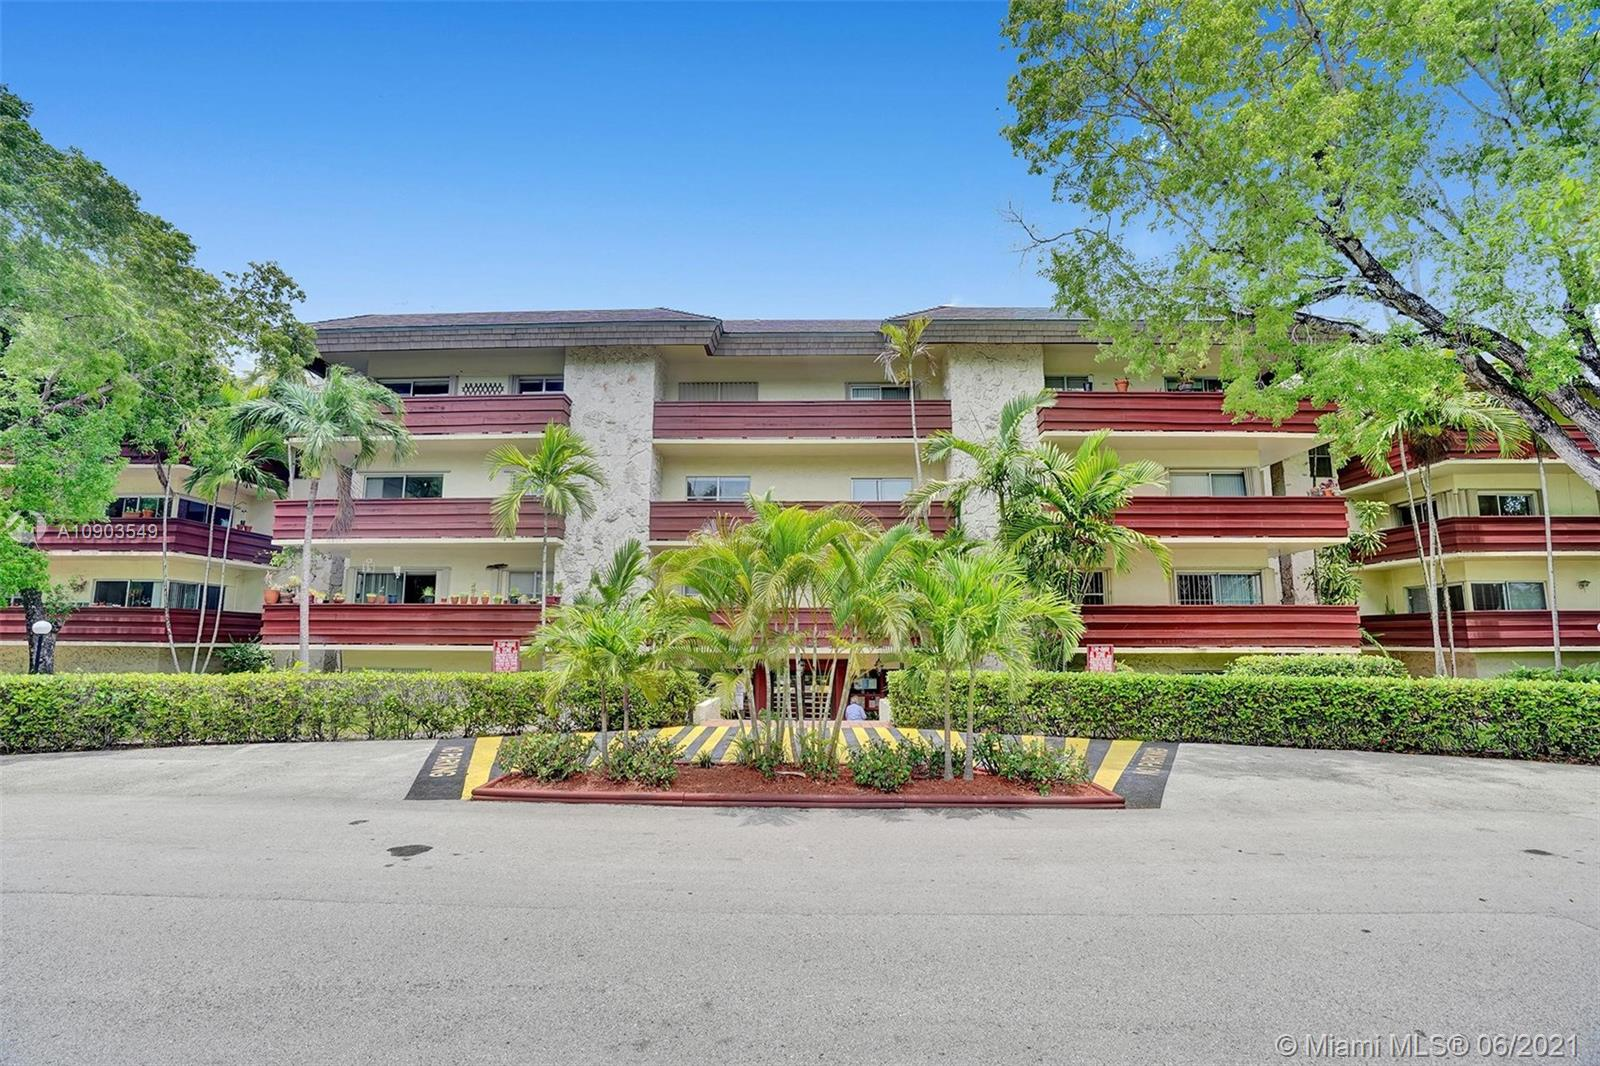 Home for sale in Villa Capri Condo Coral Gables Florida